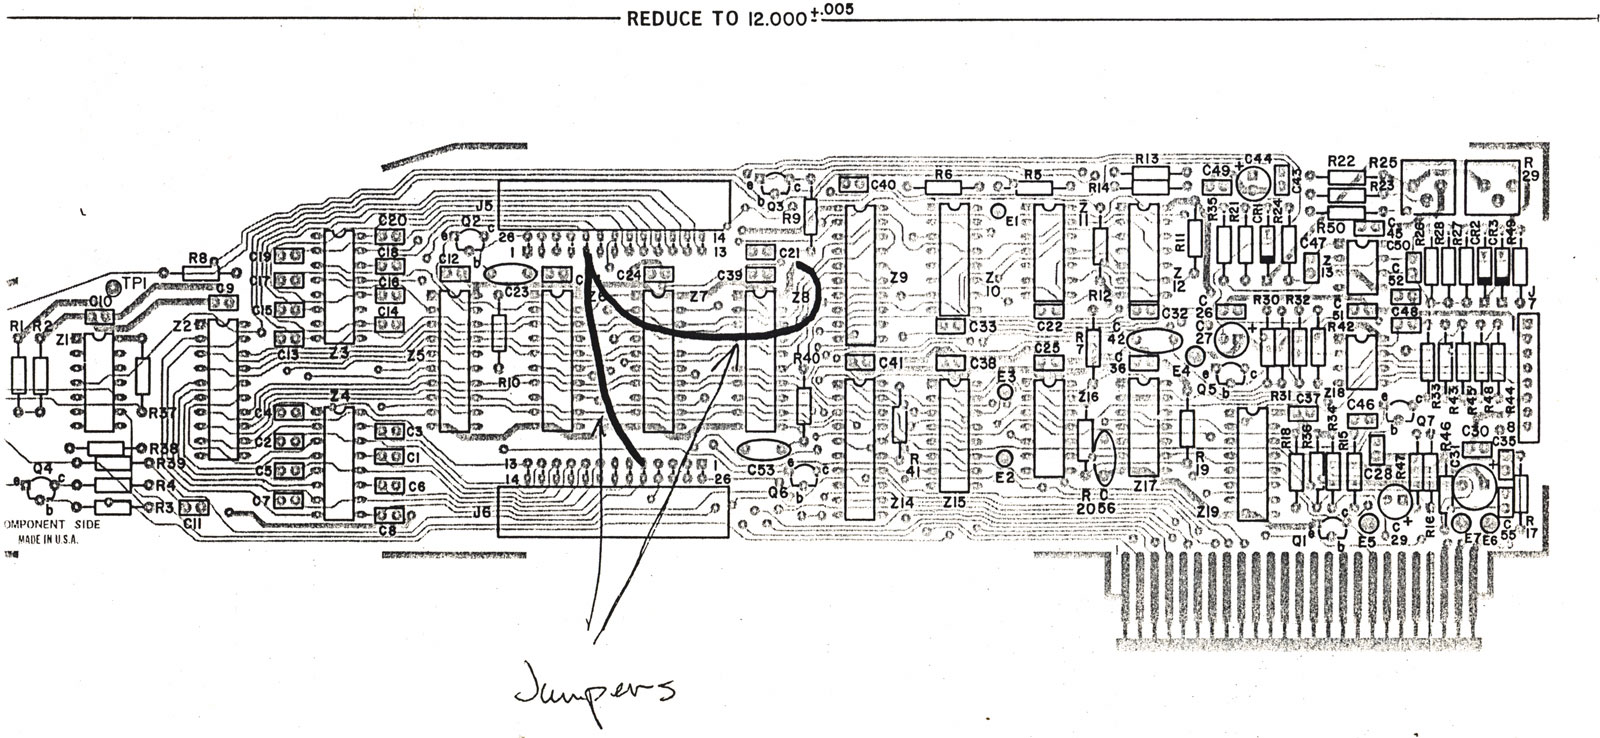 Fender Rhodes Wiring Diagram Free Download Support Diagrams Chroma Syntech Cult Midi Retrofit Manual At